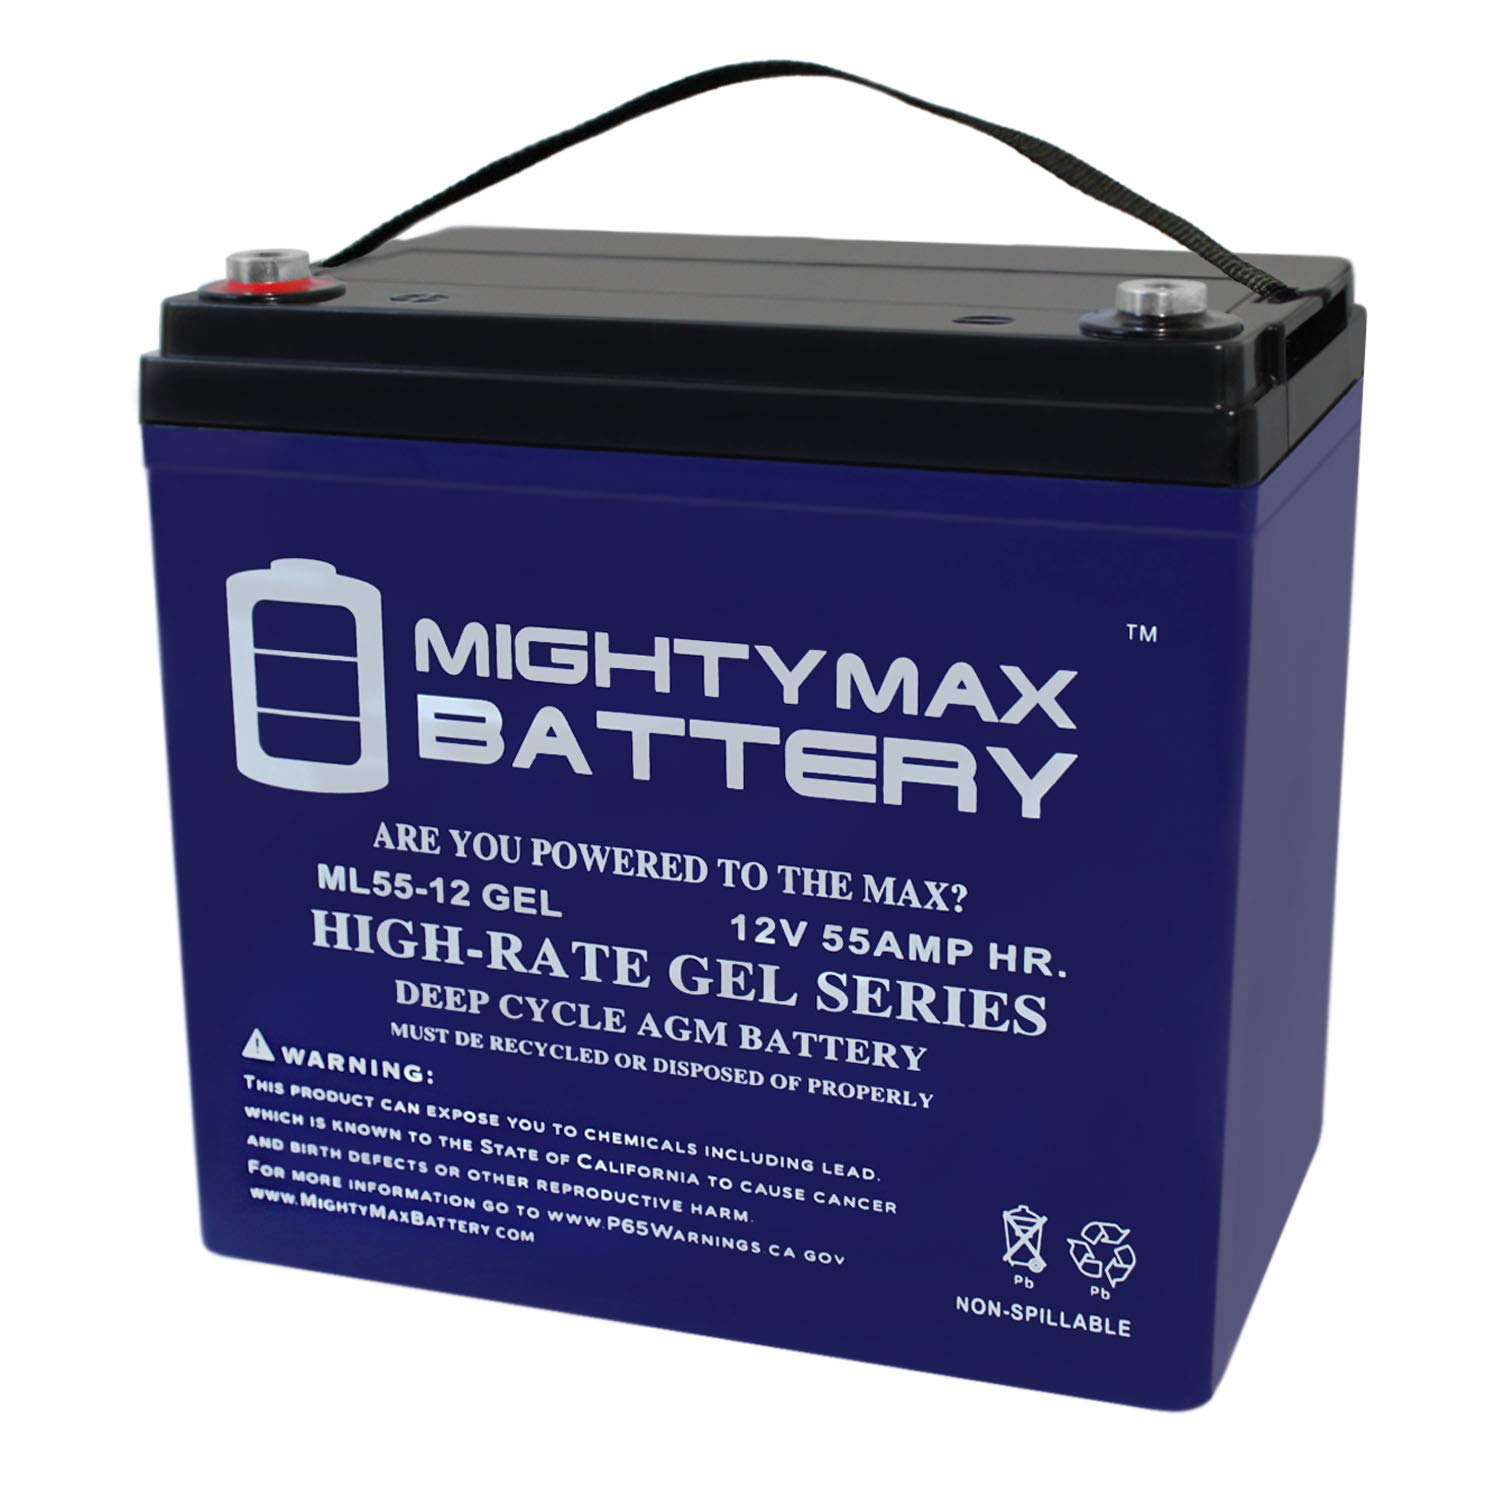 12V 55AH Gel Battery for Pride Mobility Jazzy 600, 600 XL by Mighty Max Battery